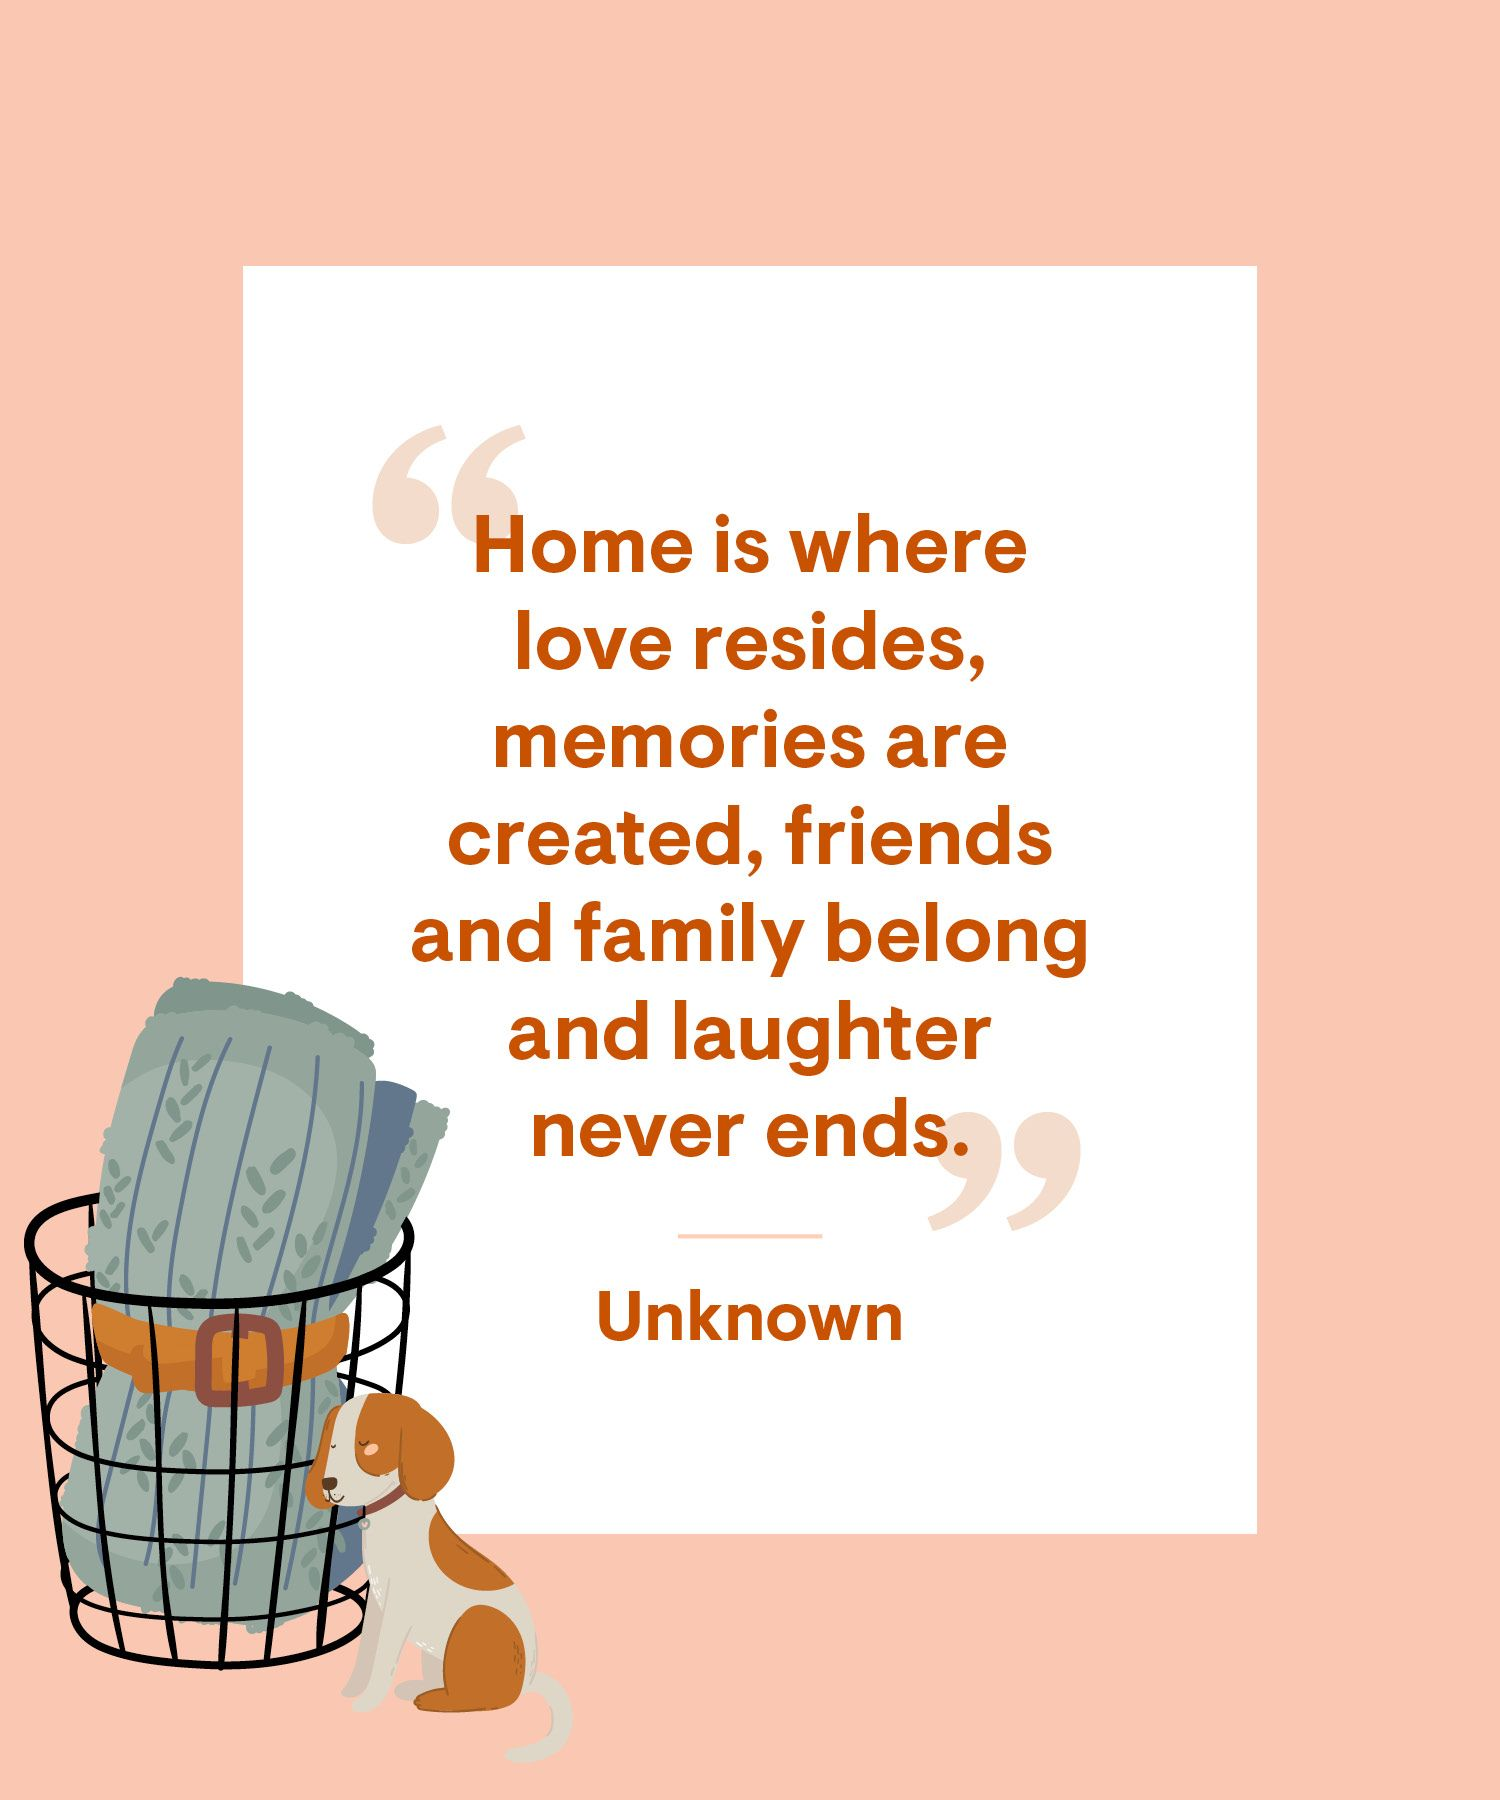 45 Best Home Quotes - Beautiful Sayings About Home Sweet Home